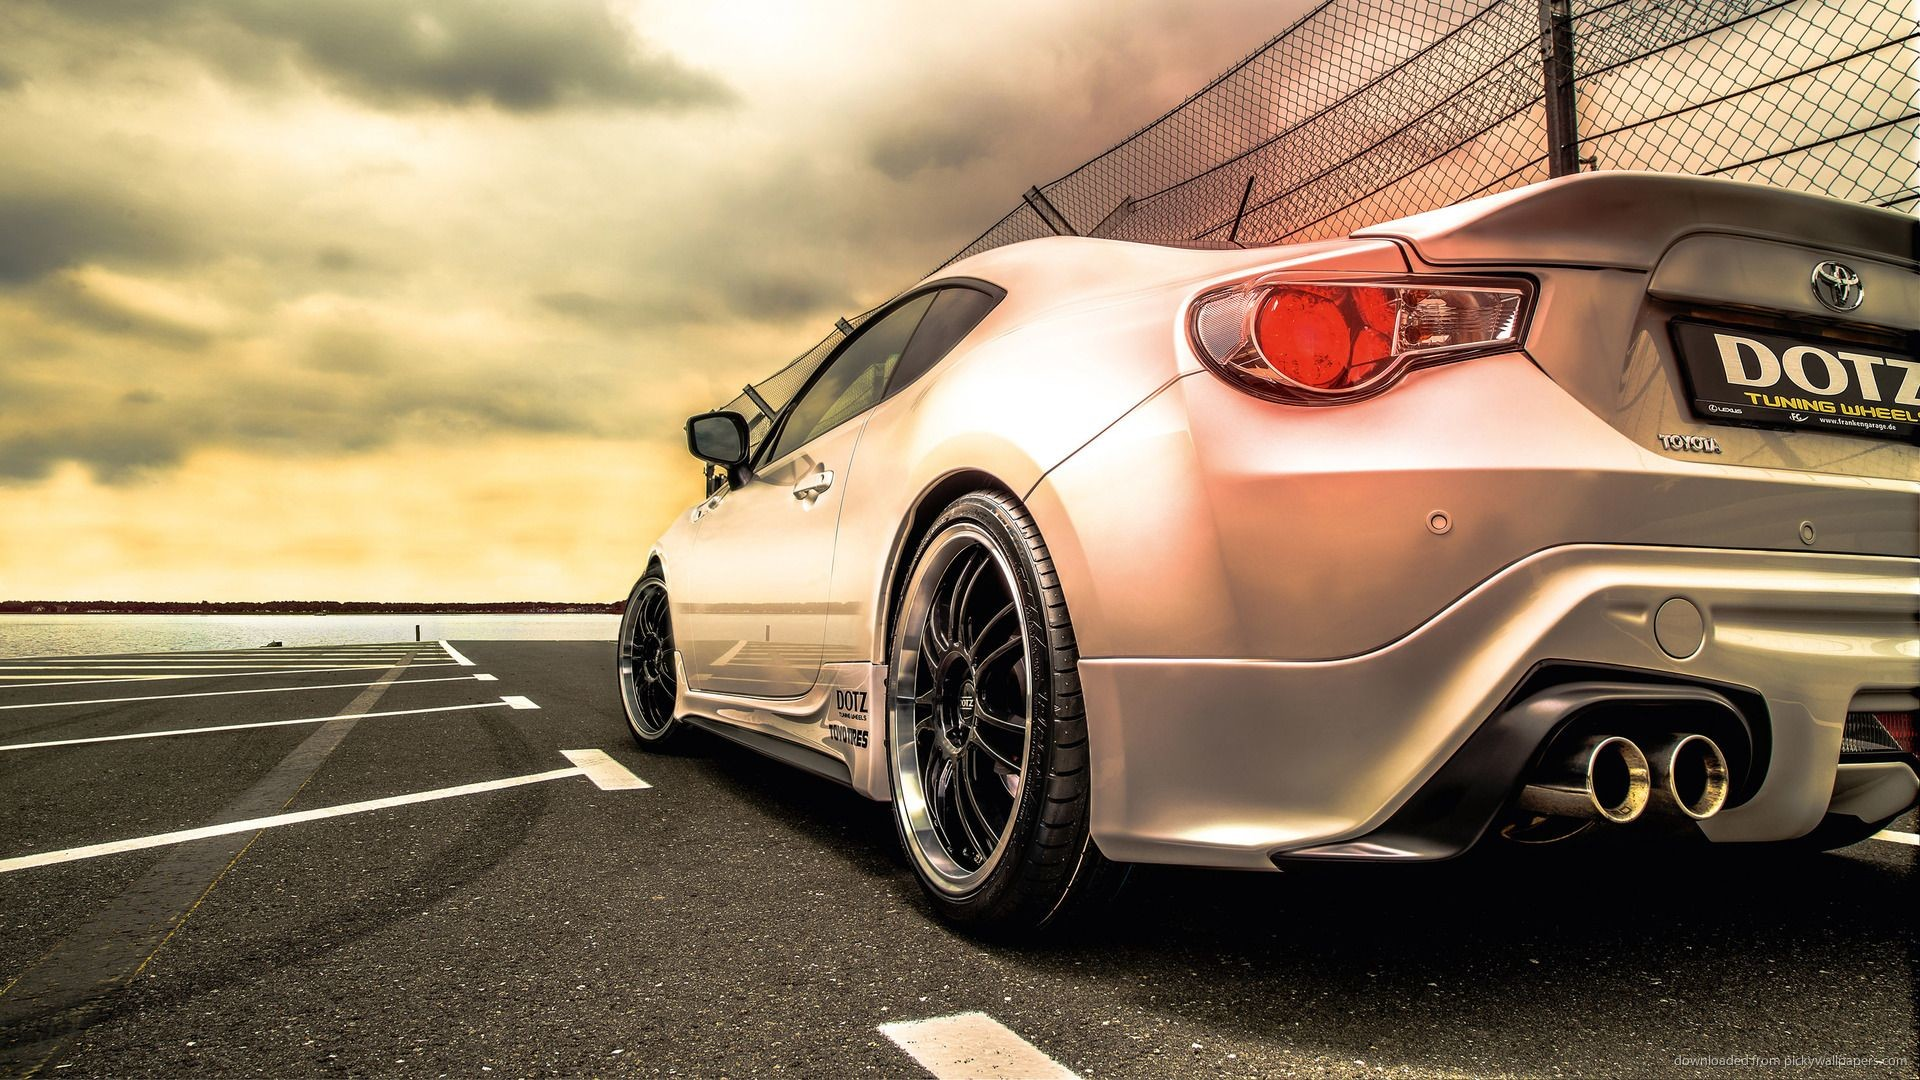 1920x1080 Rocket Bunny wallpaper Unsorted Other Wallpaper Collection